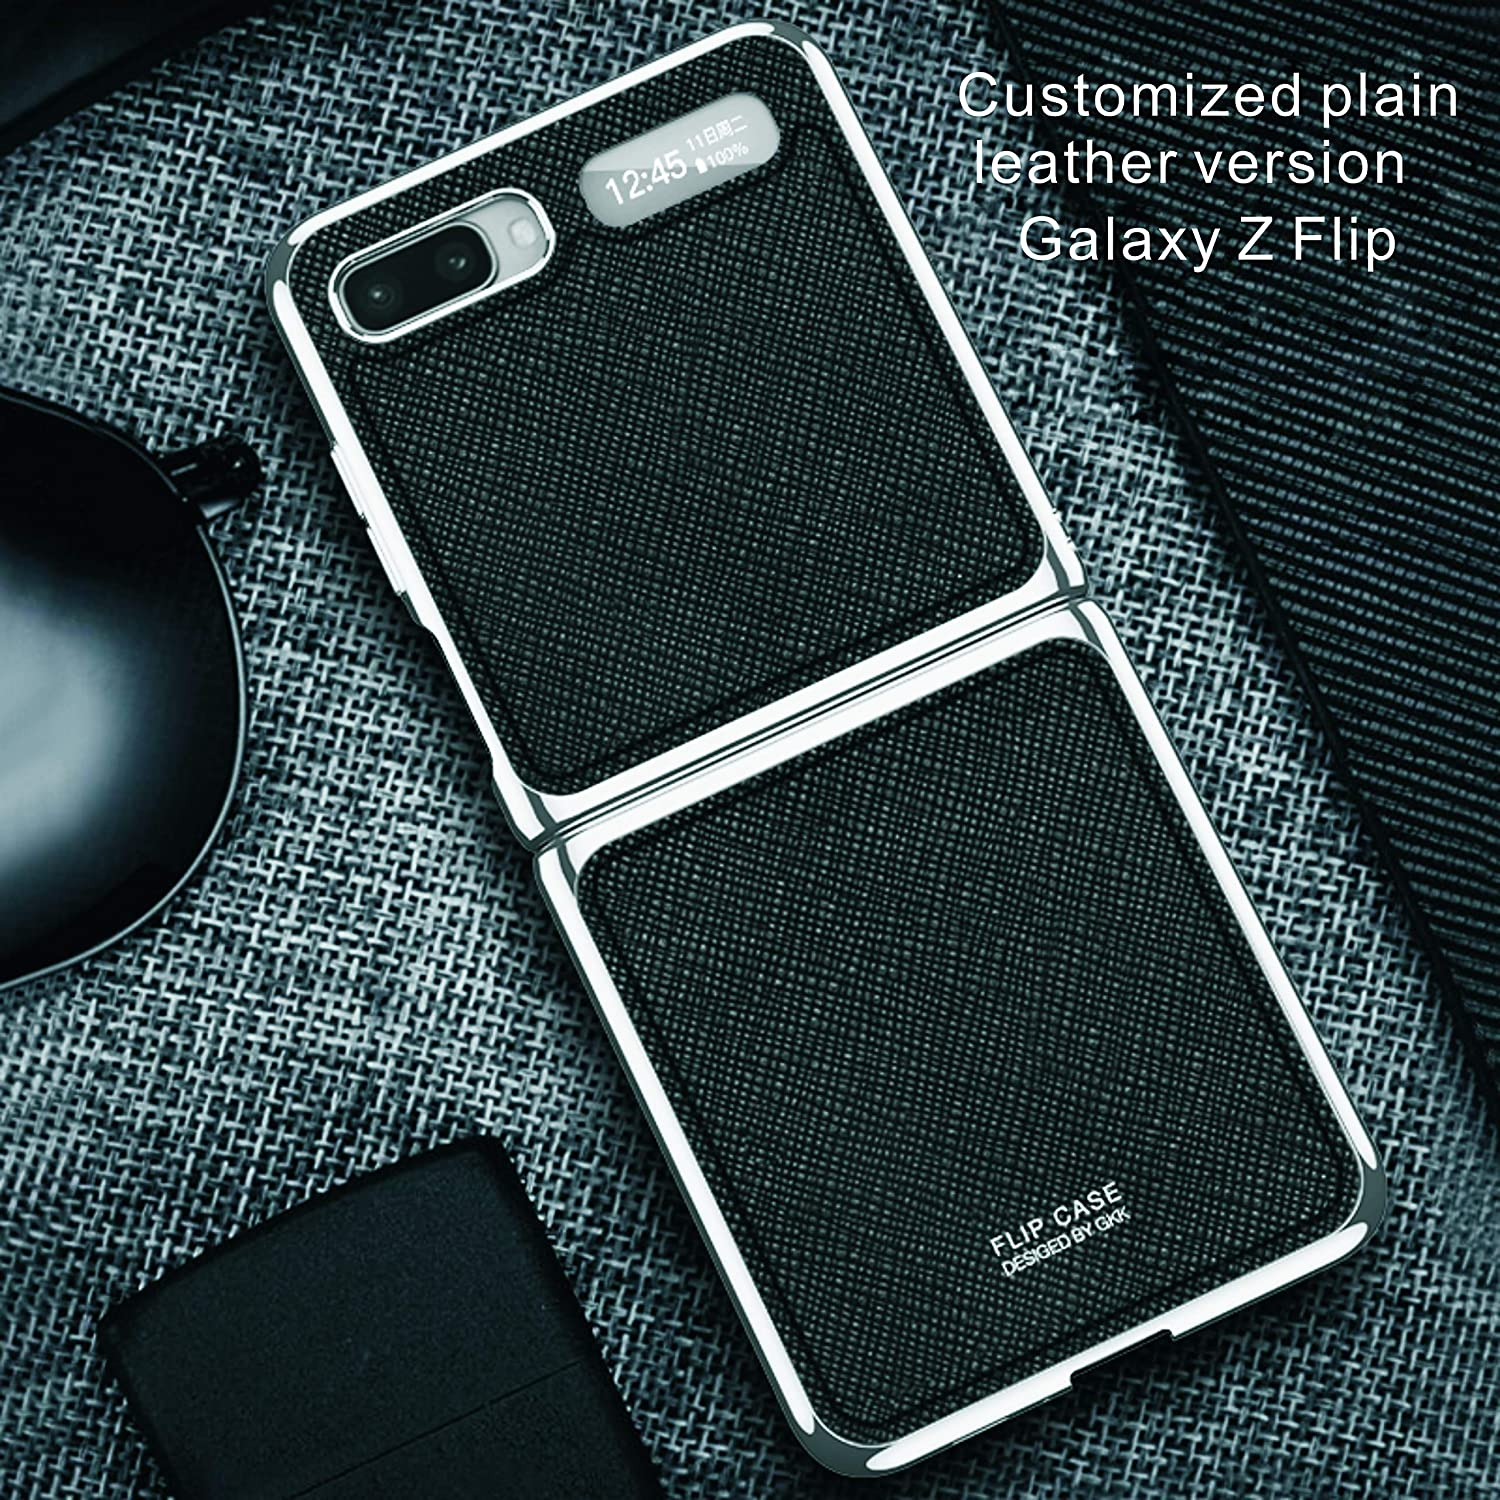 Case for Samsung Galaxy Z Flip Ultra-Thin Protective Cover, Bare-Metal Hand Feel, Leather Material, 360 All-Round Protection, Firm and Non-Shedding(Cross Pattern Black)